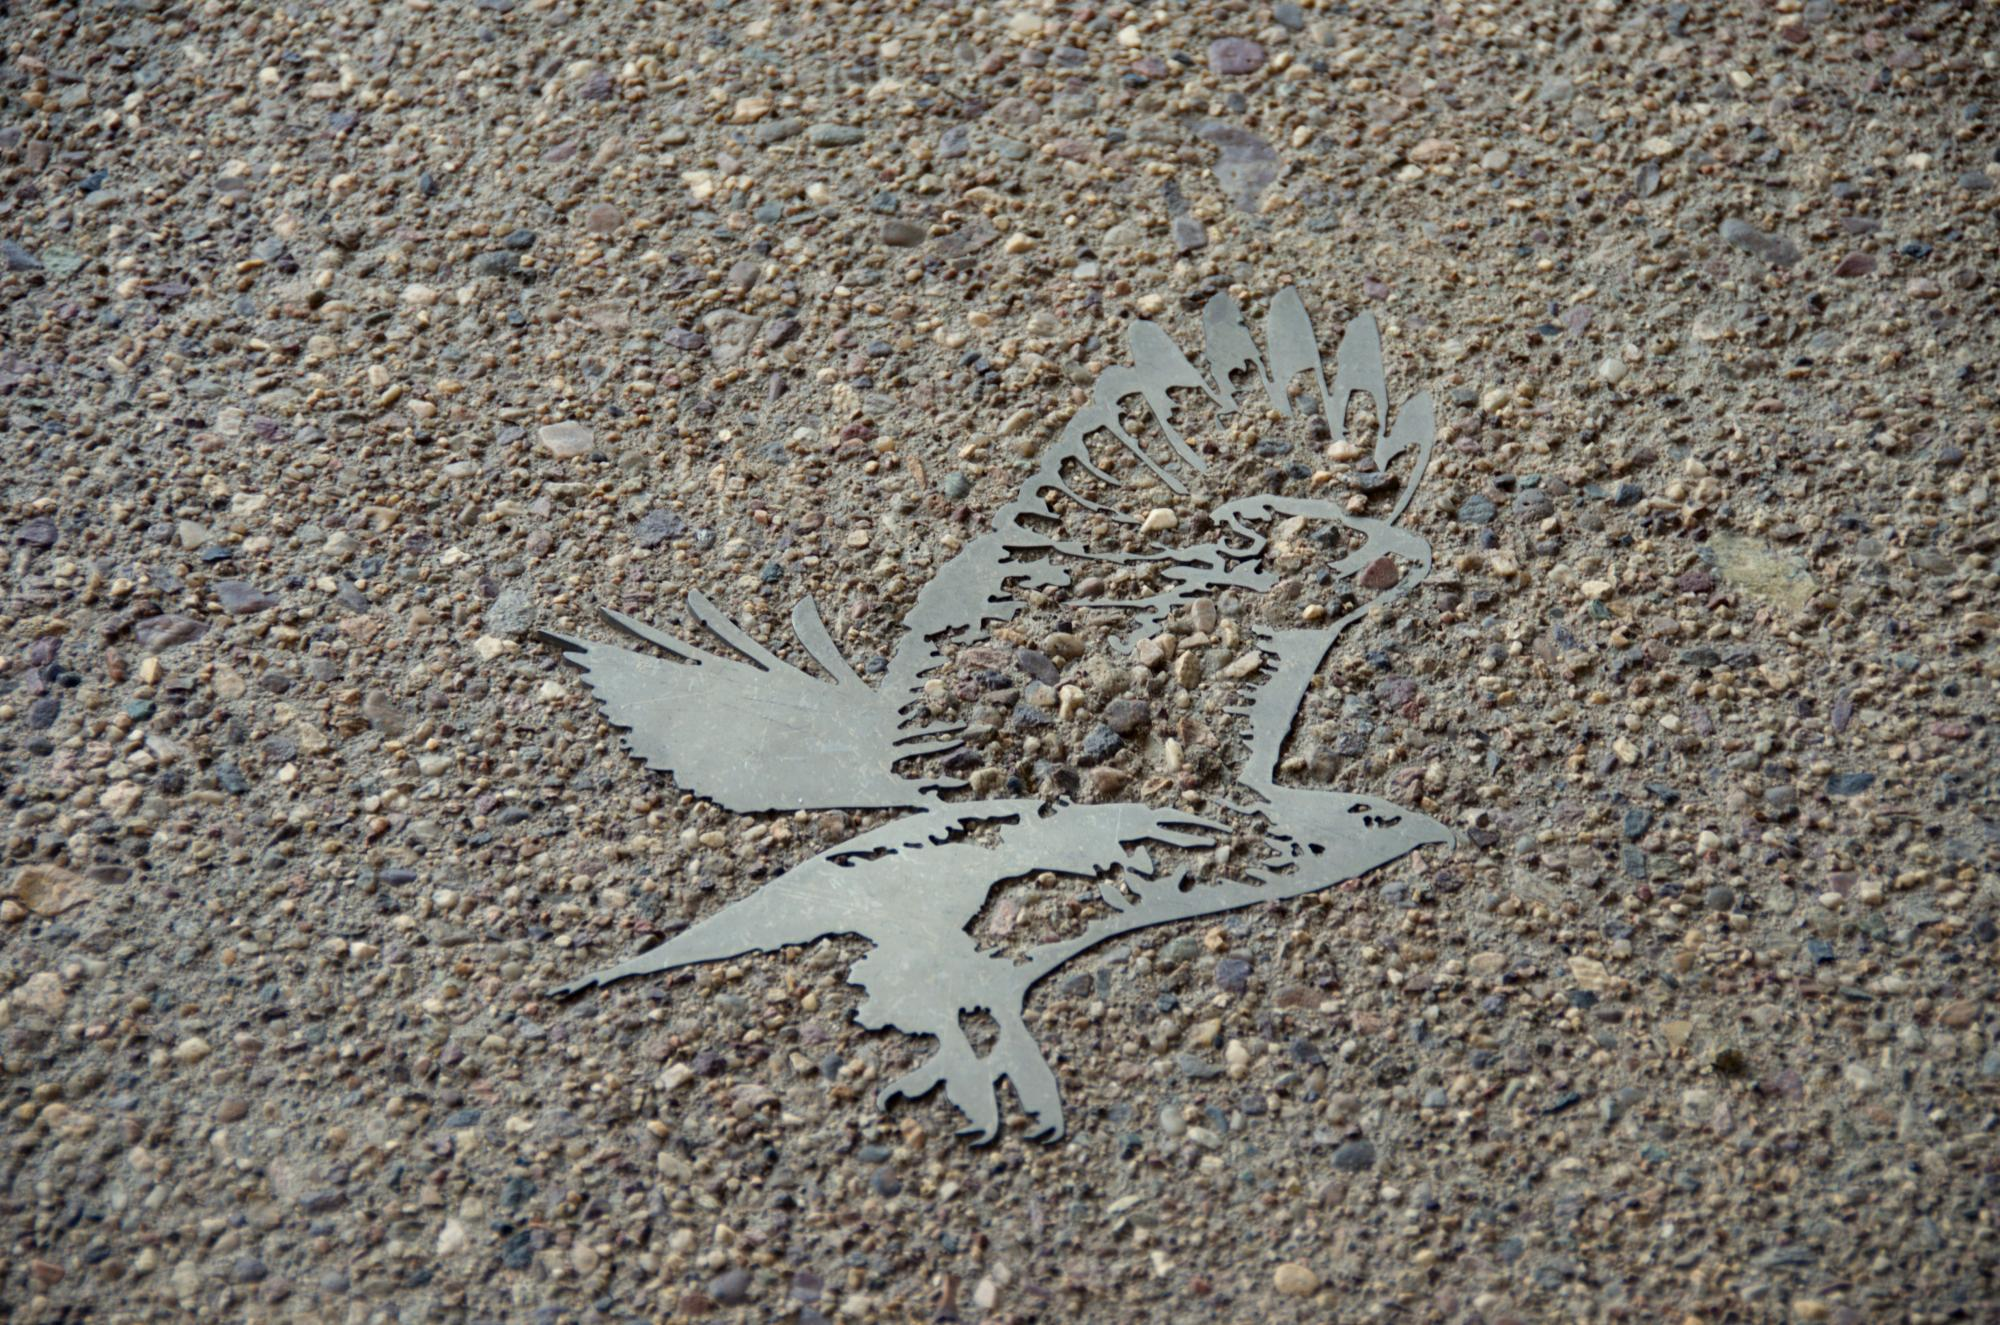 Located at the ENR2 building are metal inlays of Gila monsters, desert tortoises, hummingbirds, bobcats, vermilion flycatchers and pupfish.